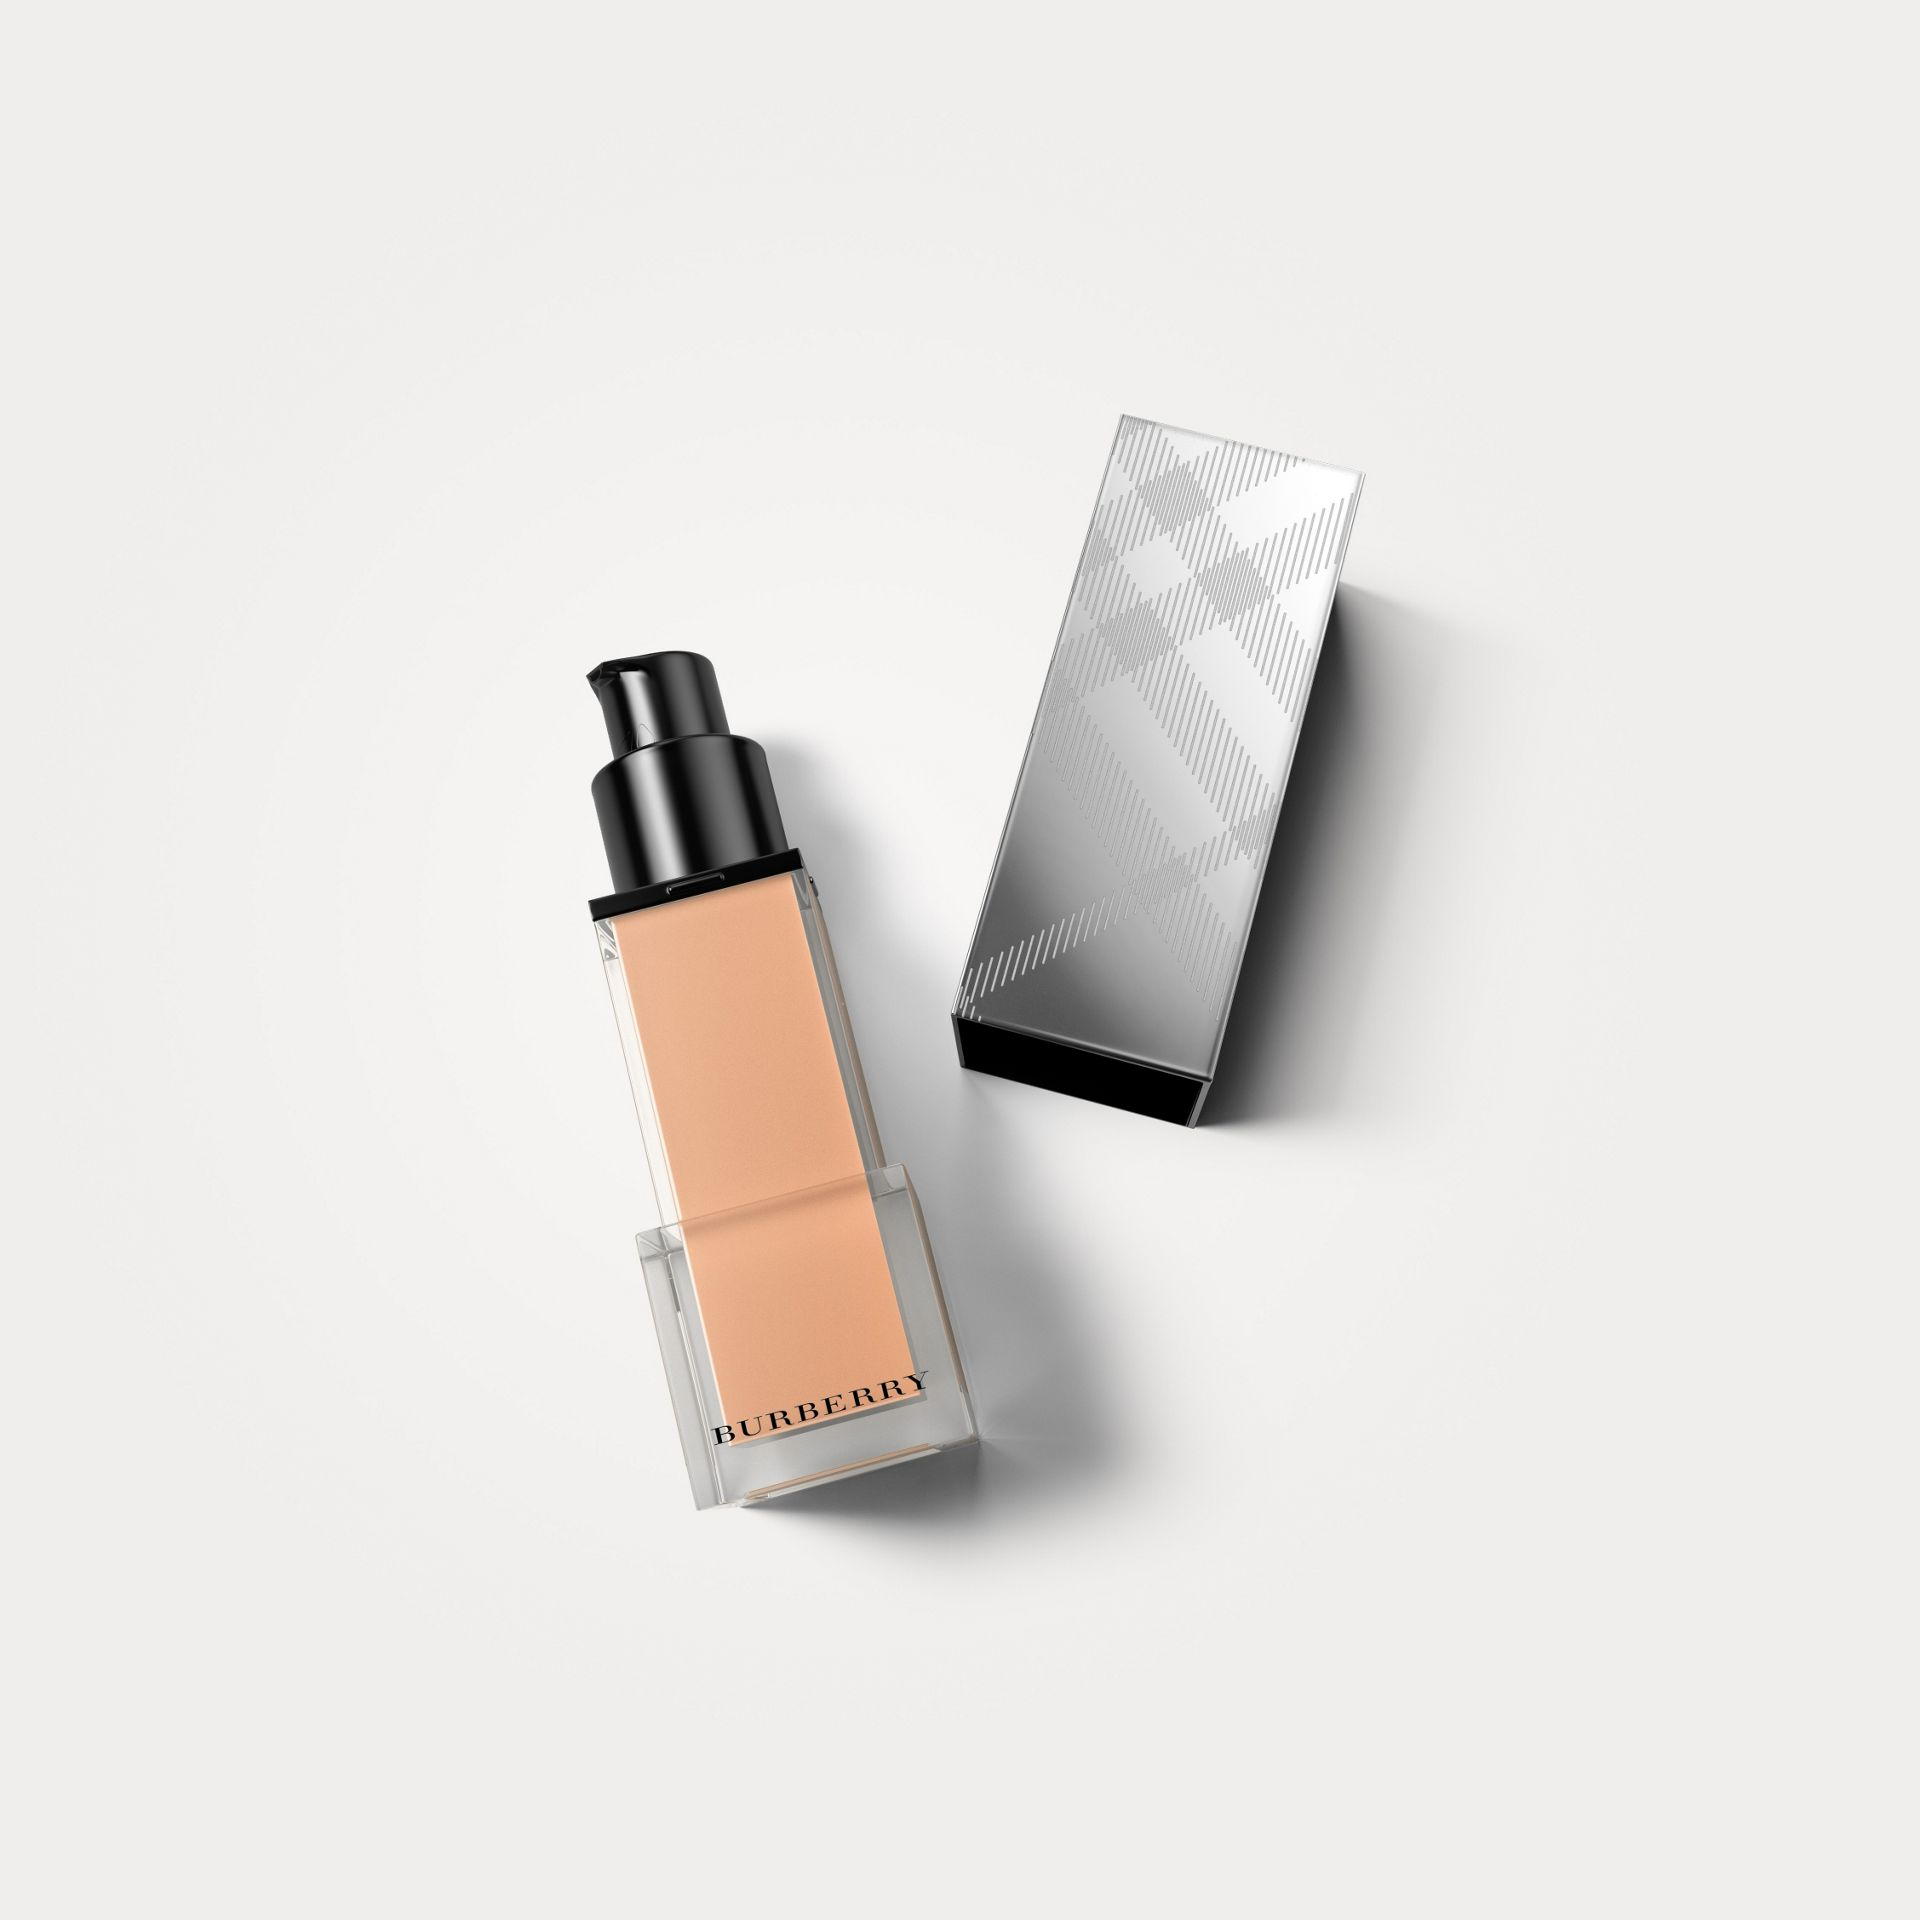 Rosy nude 31 Fresh Glow Foundation SPF 15 PA+++ – Rosy Nude No.31 - gallery image 1